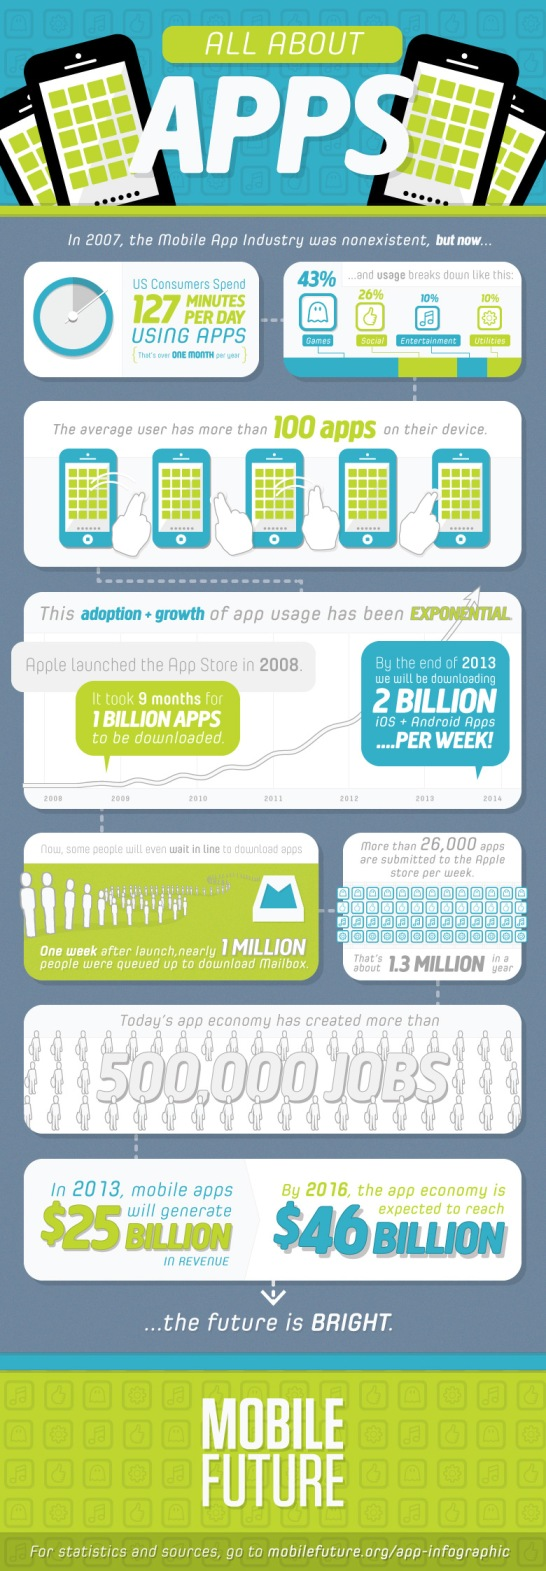 Apps-usage-2013-infographic